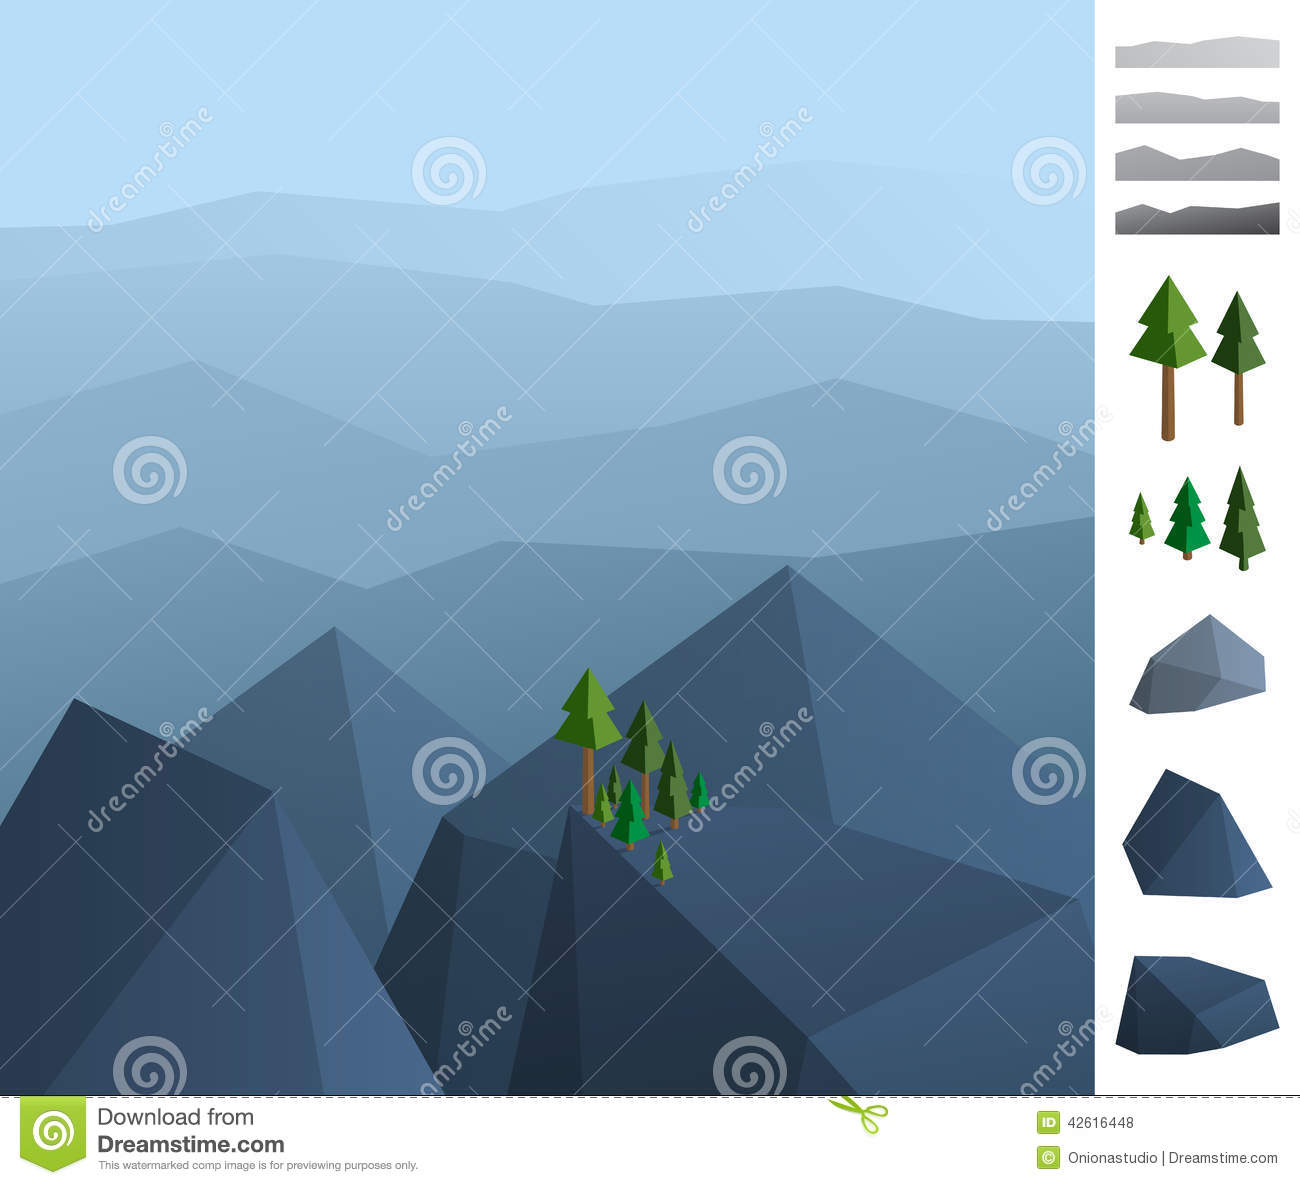 More similar stock images of 3d landscape with fall tree - Simply Geometric Illustration Of Rock Mountains Landscape Royalty Free Stock Photos